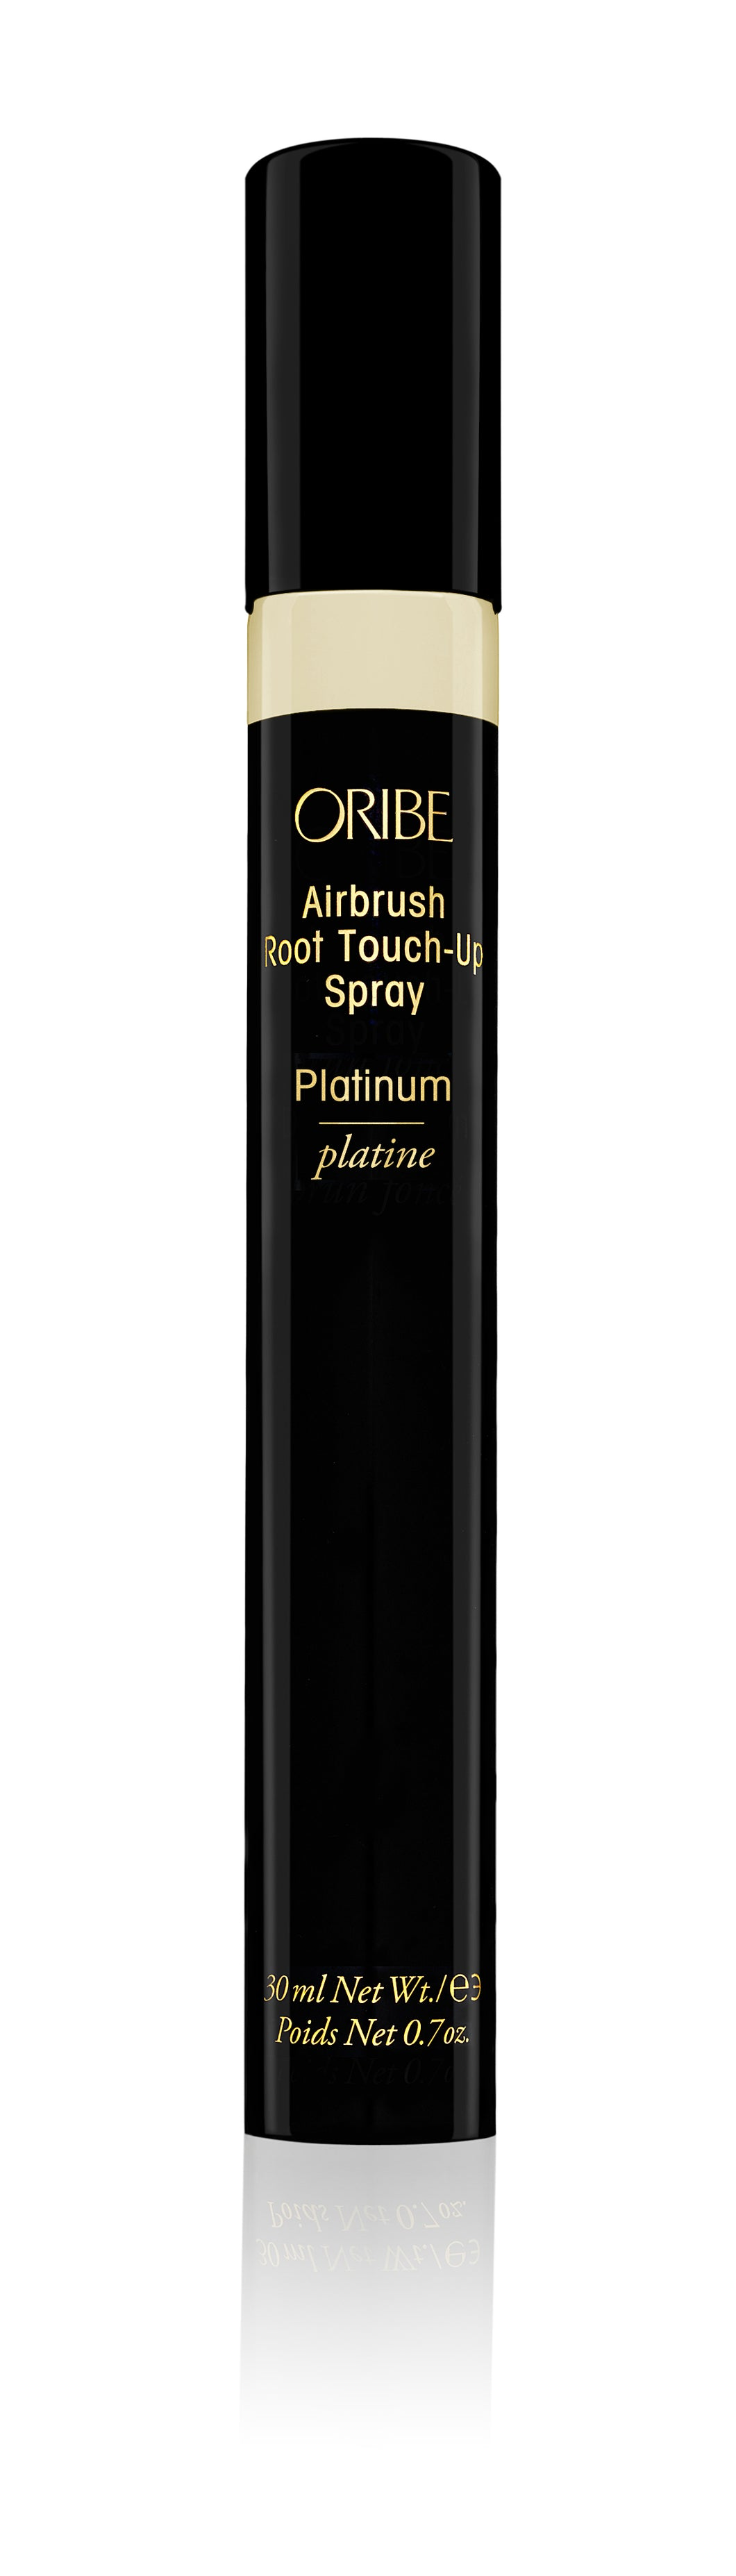 Oribe Airbrush Root Touch Up Spray - Platinum